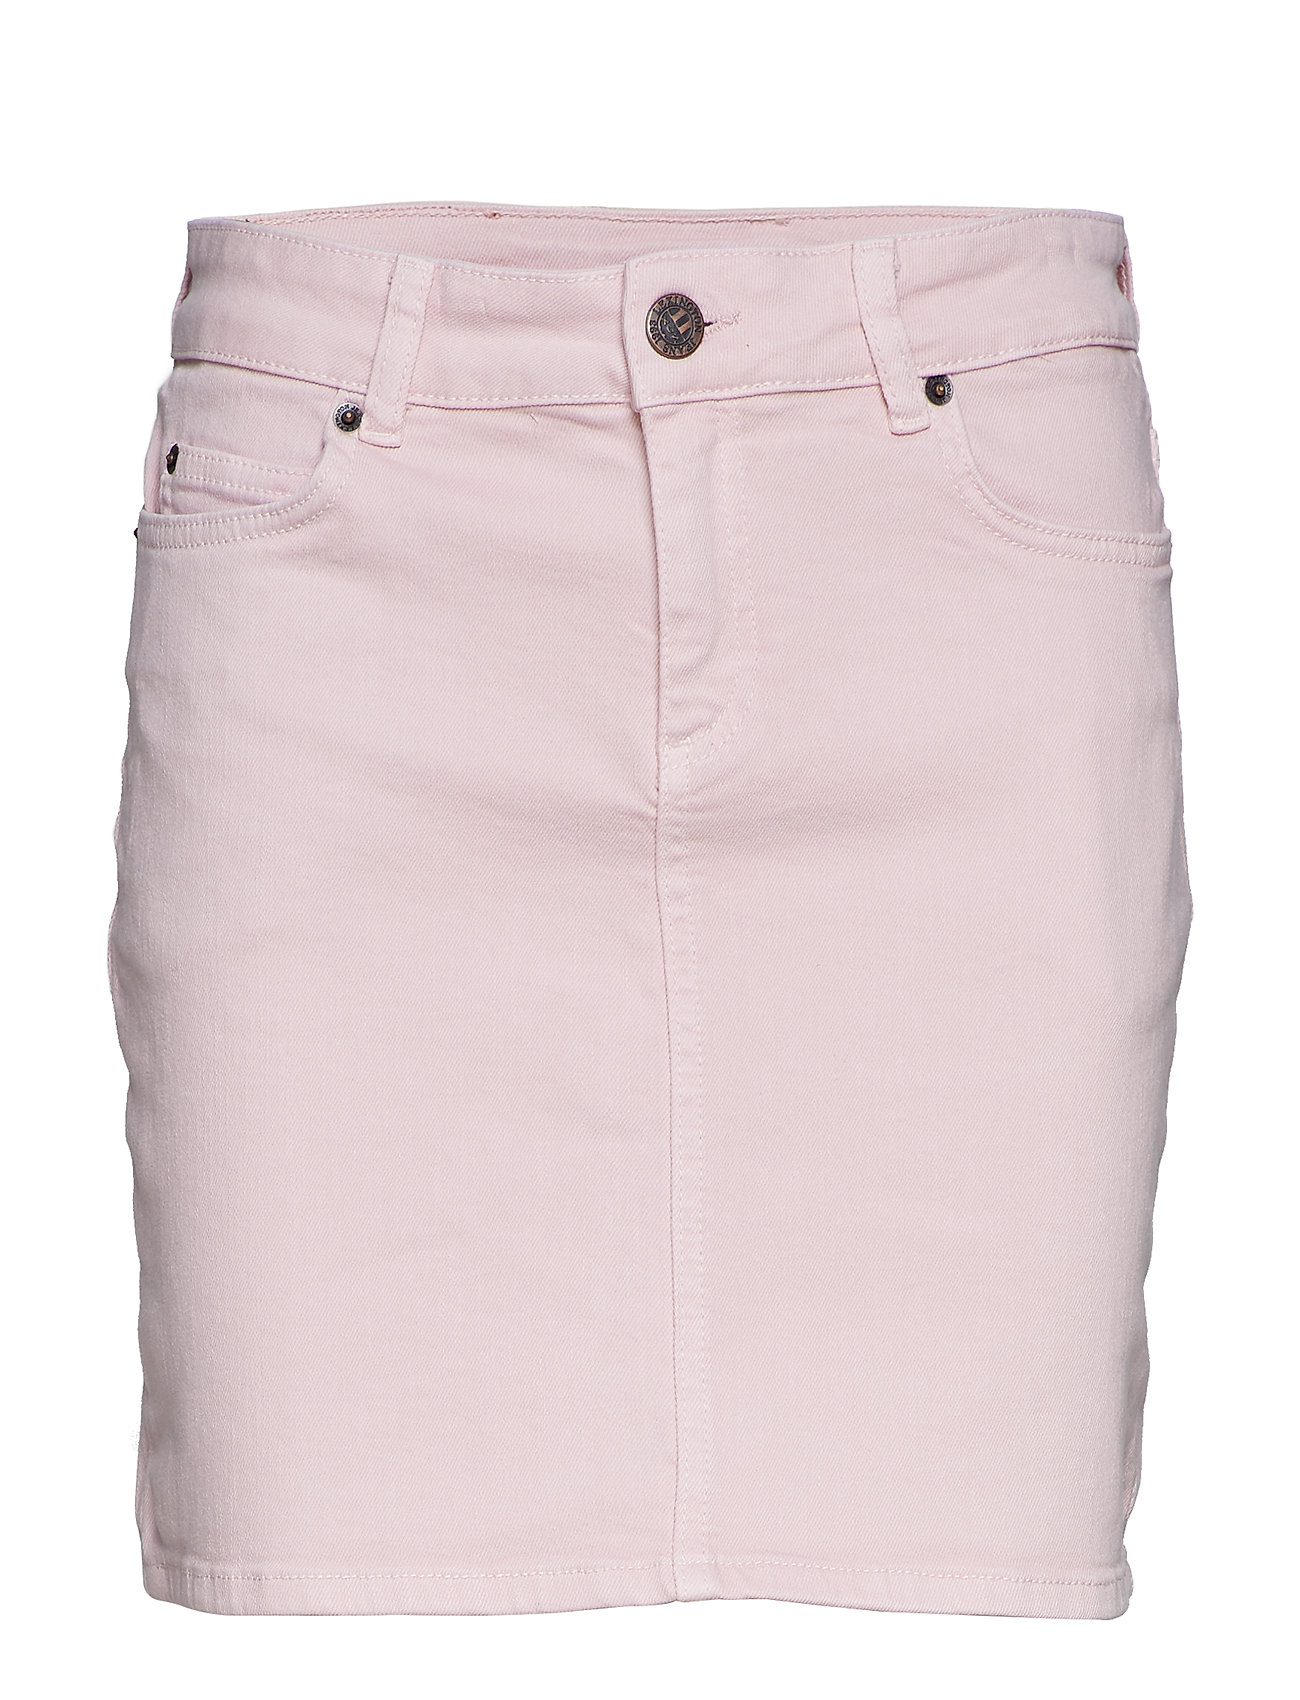 Lexington Clothing Alexa Pink Denim Skirt - PINK DENIM